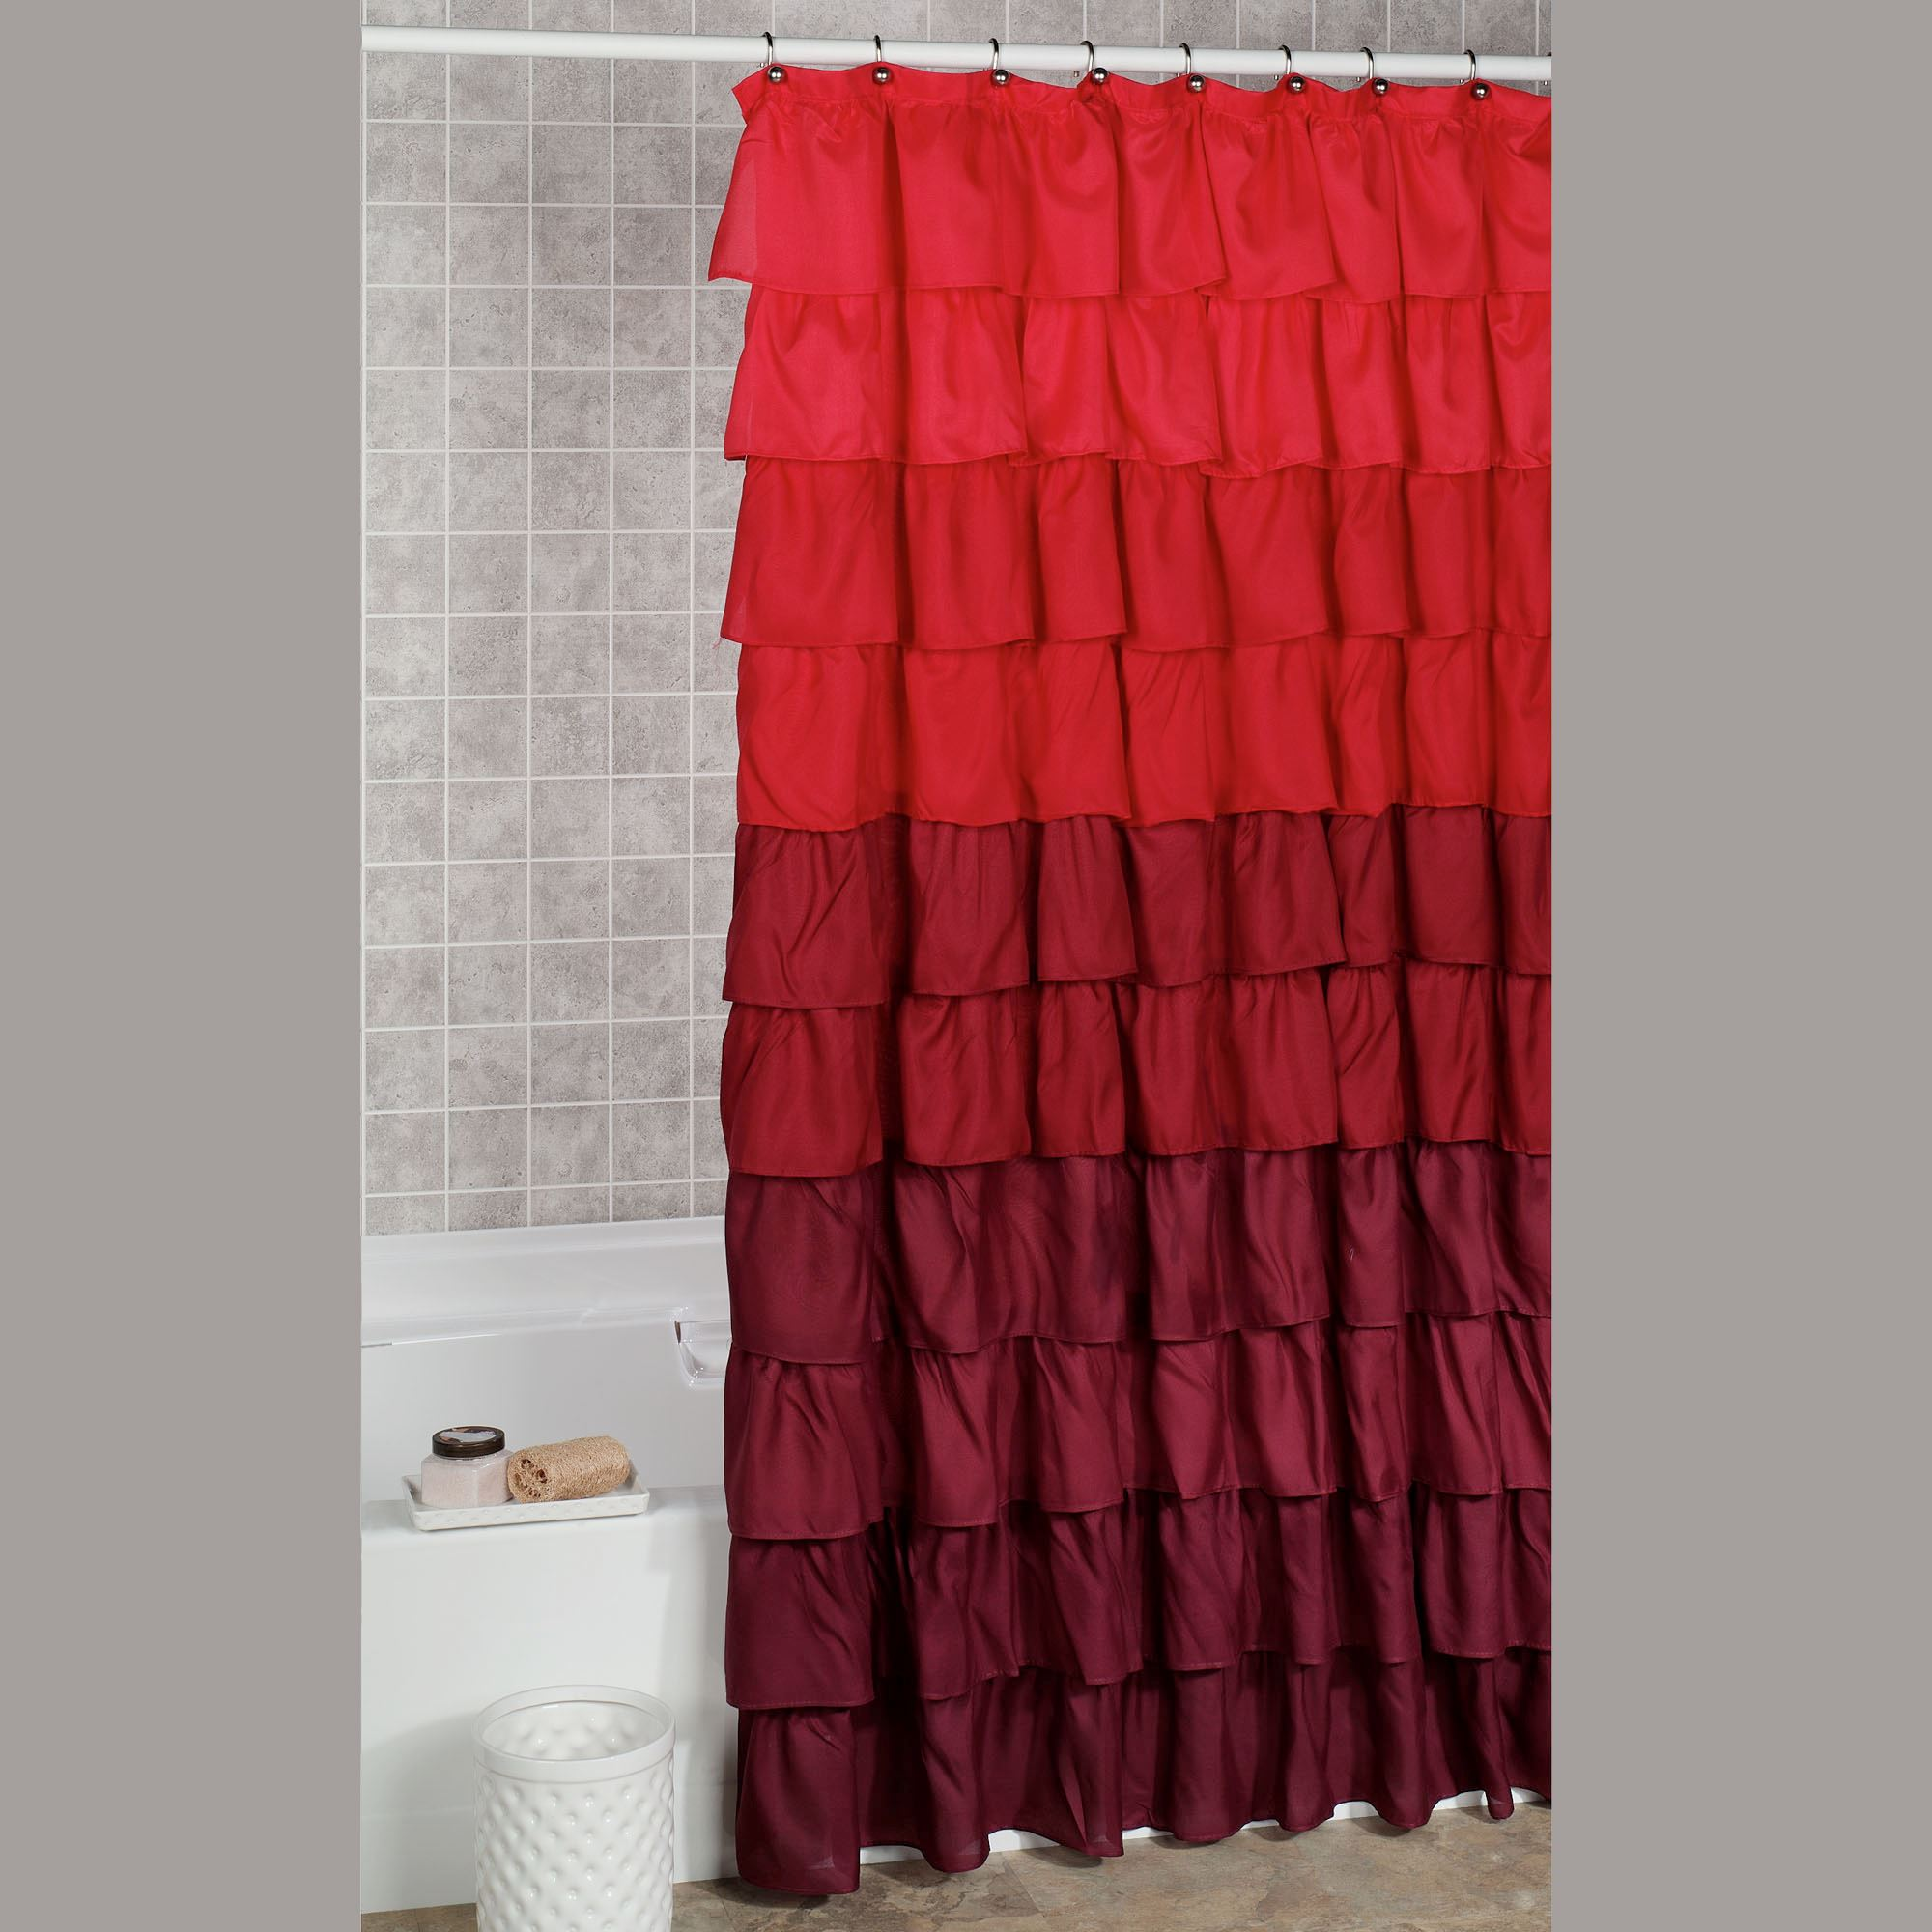 Shower Curtain Red